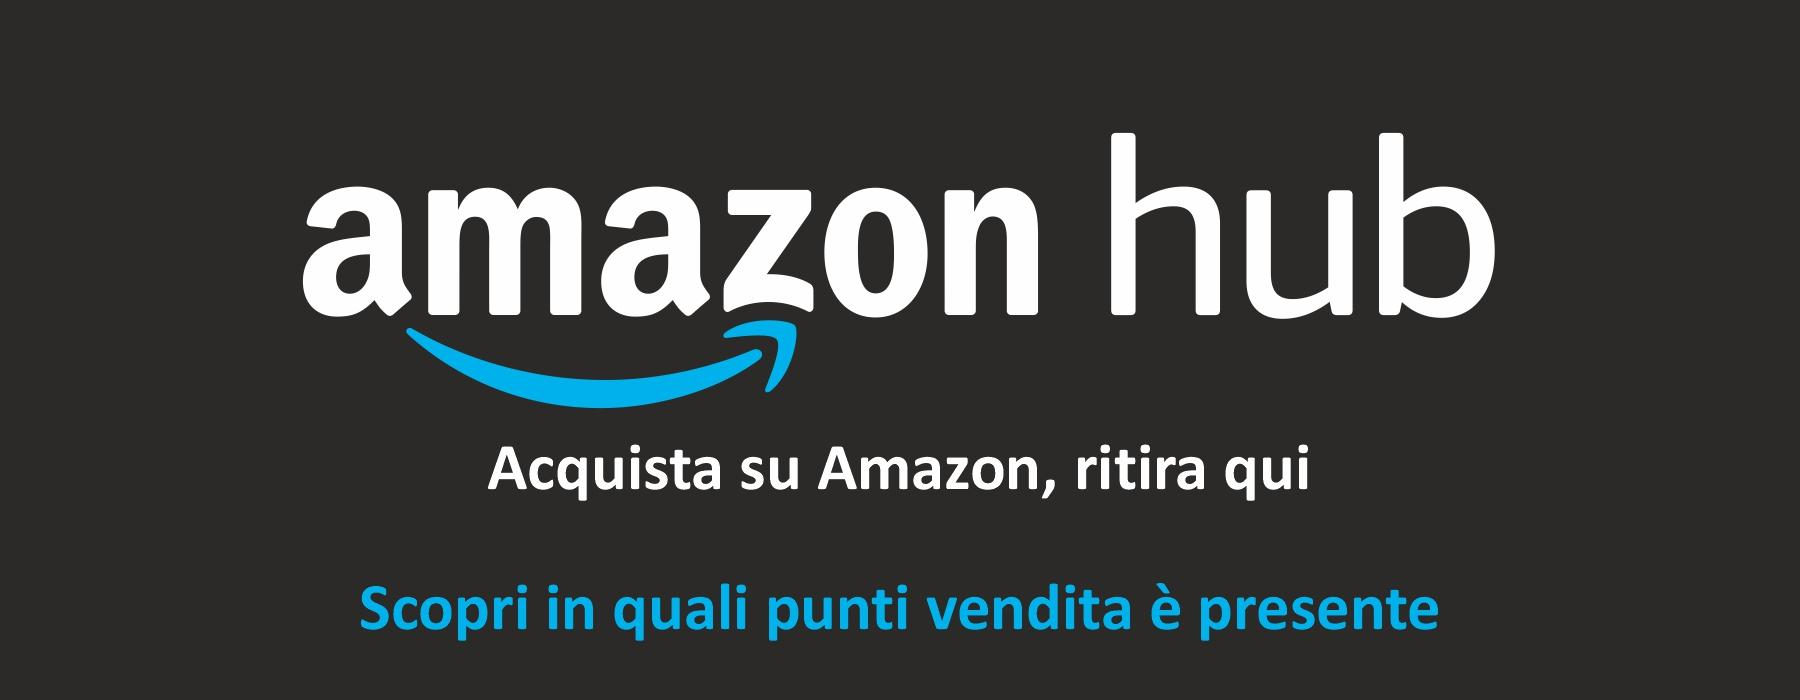 Amazon Locker nei Maxì